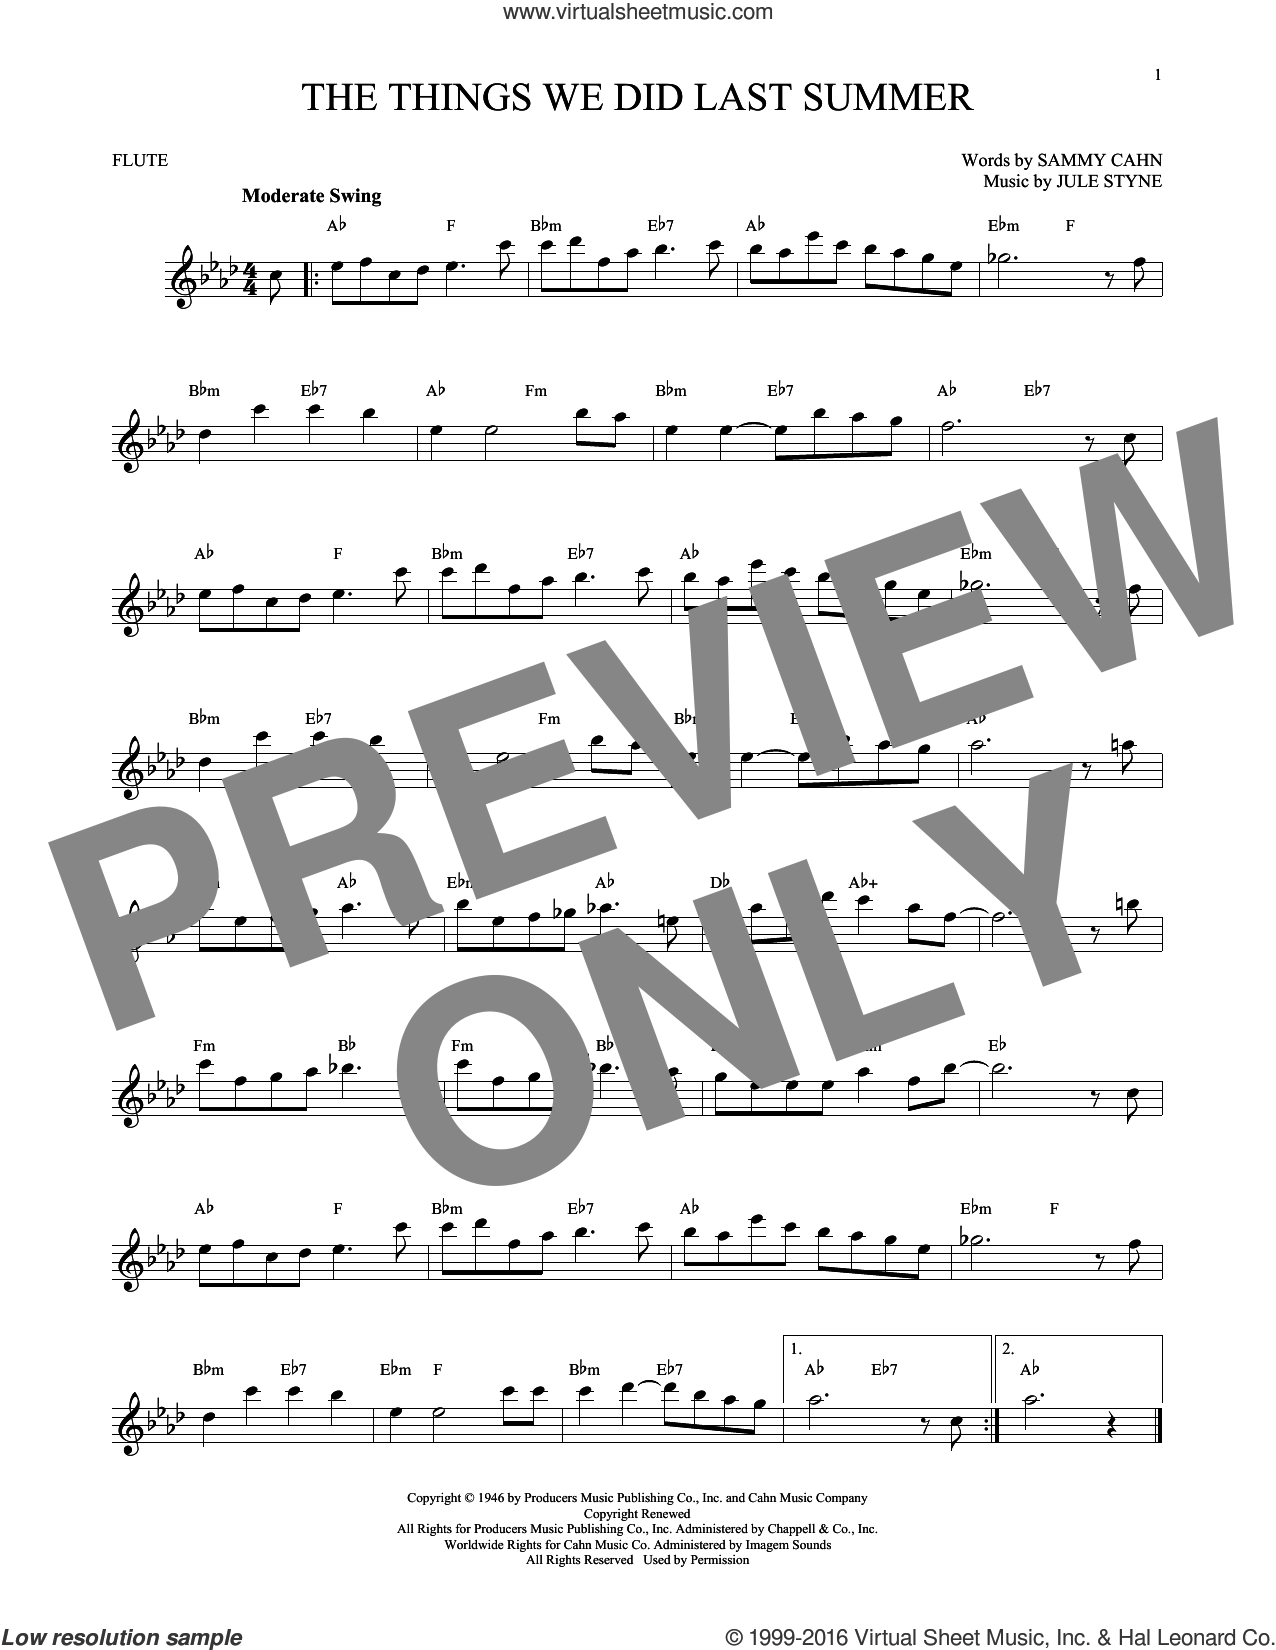 The Things We Did Last Summer sheet music for flute solo by Sammy Cahn and Jule Styne, intermediate skill level